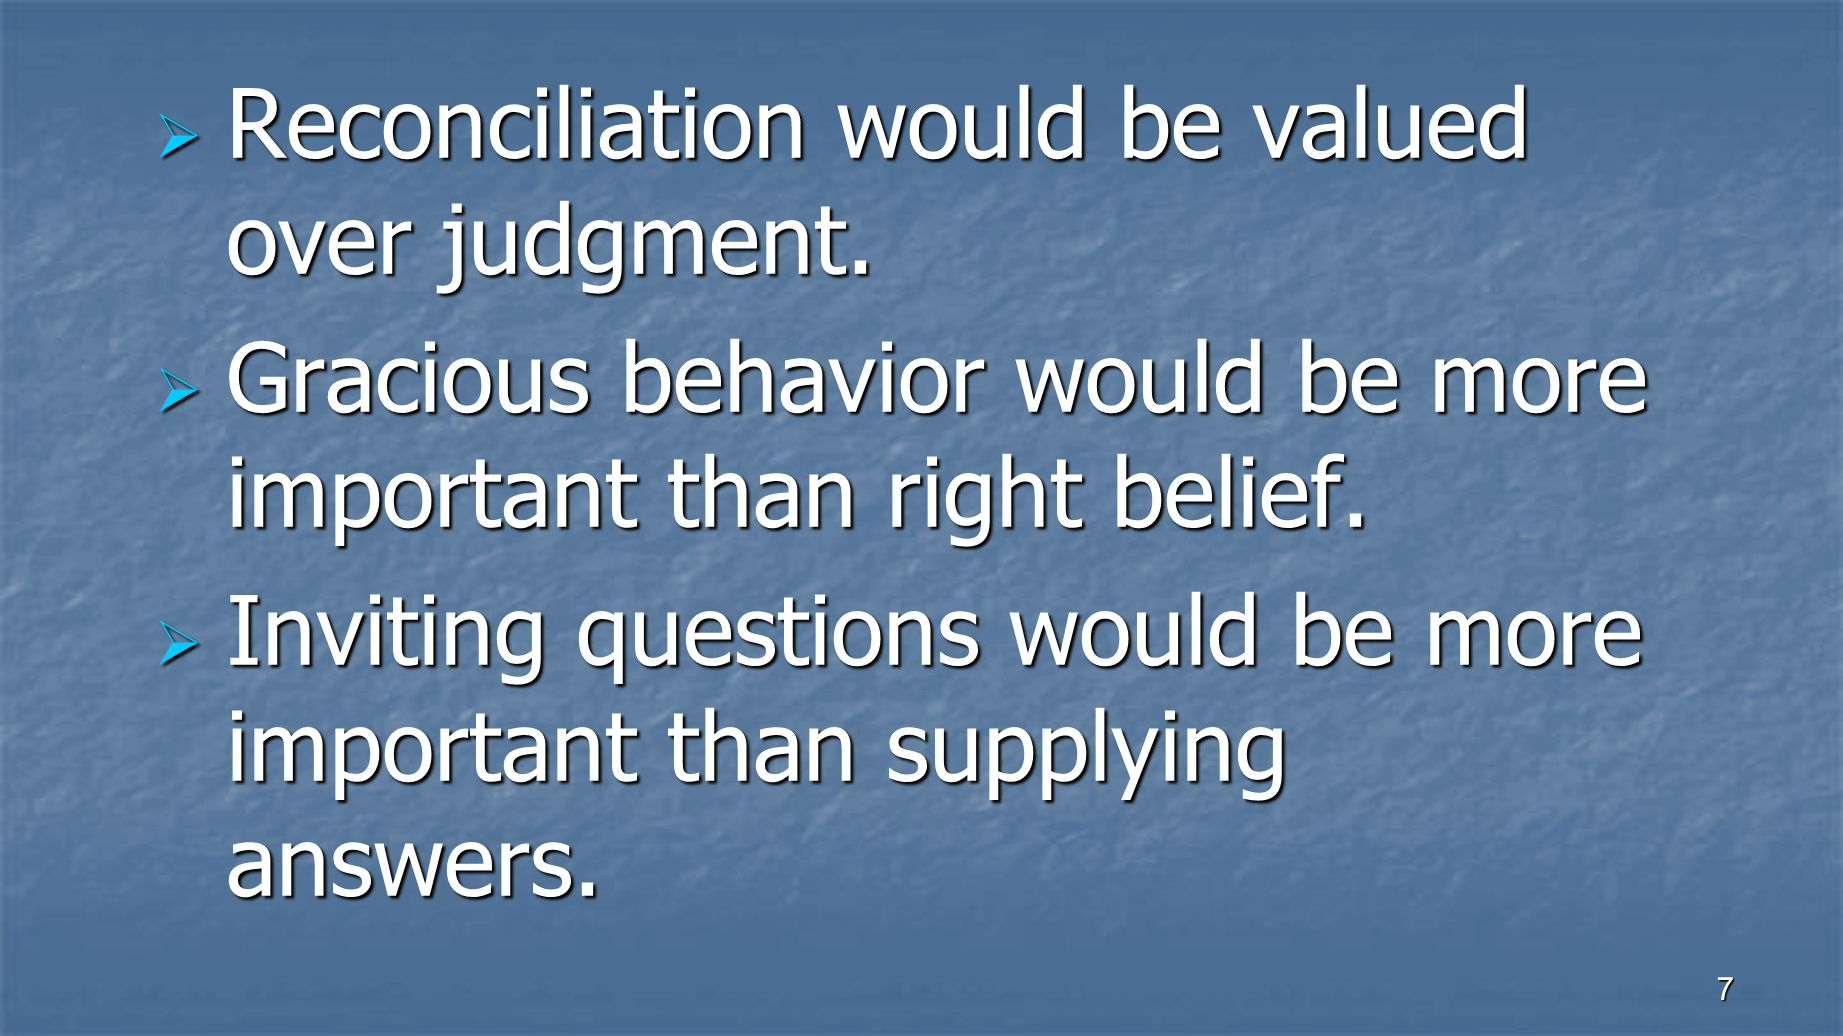 8  Encouraging personal exploration would be more important than communal conformity.